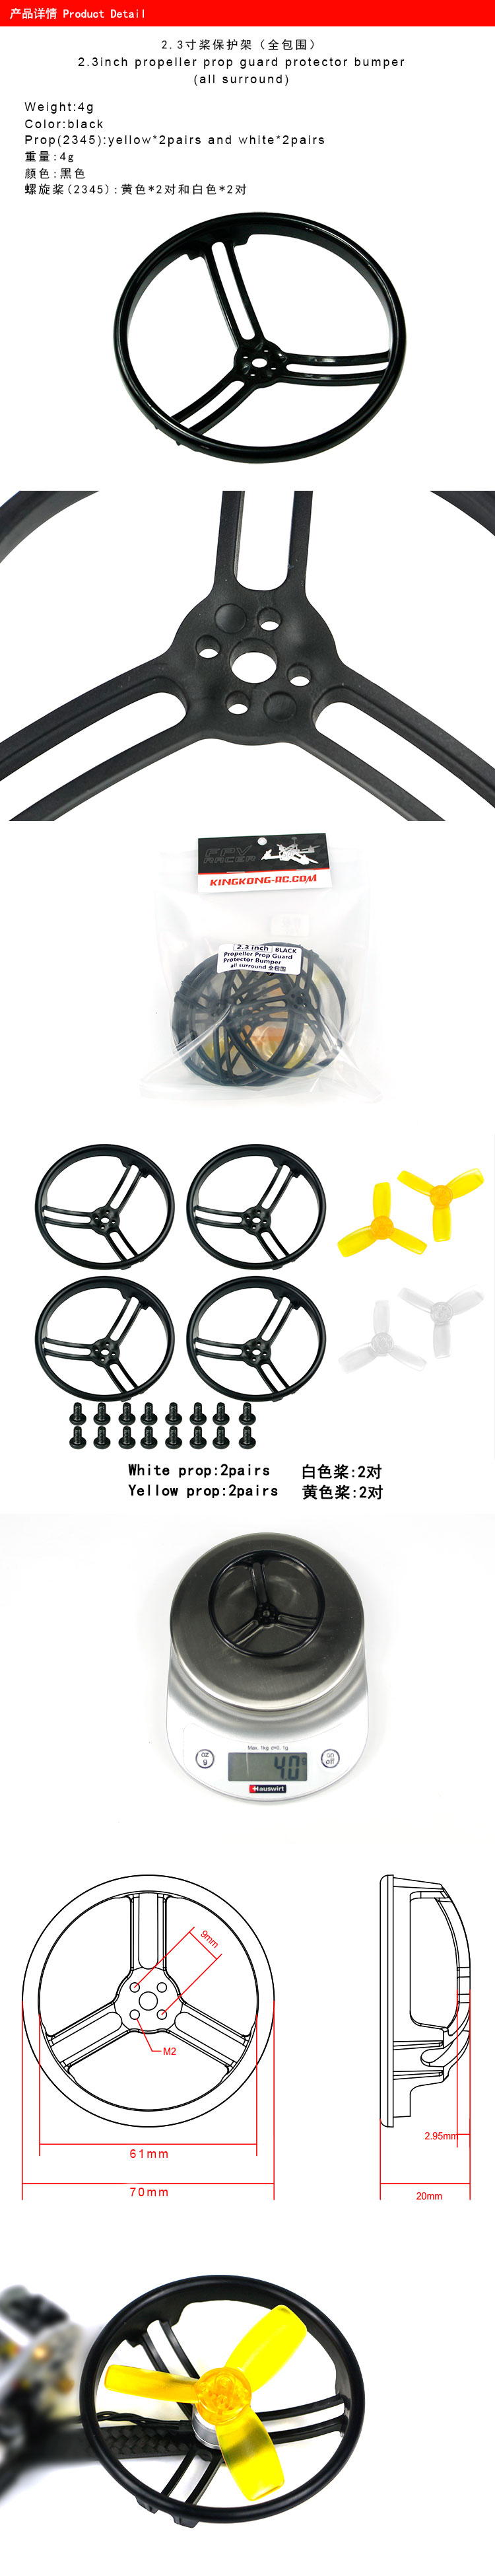 2.3 inch 2345 Propeller Prop Guard Protector Bumper for KingKong Drone Quadcopter All Surround F21480